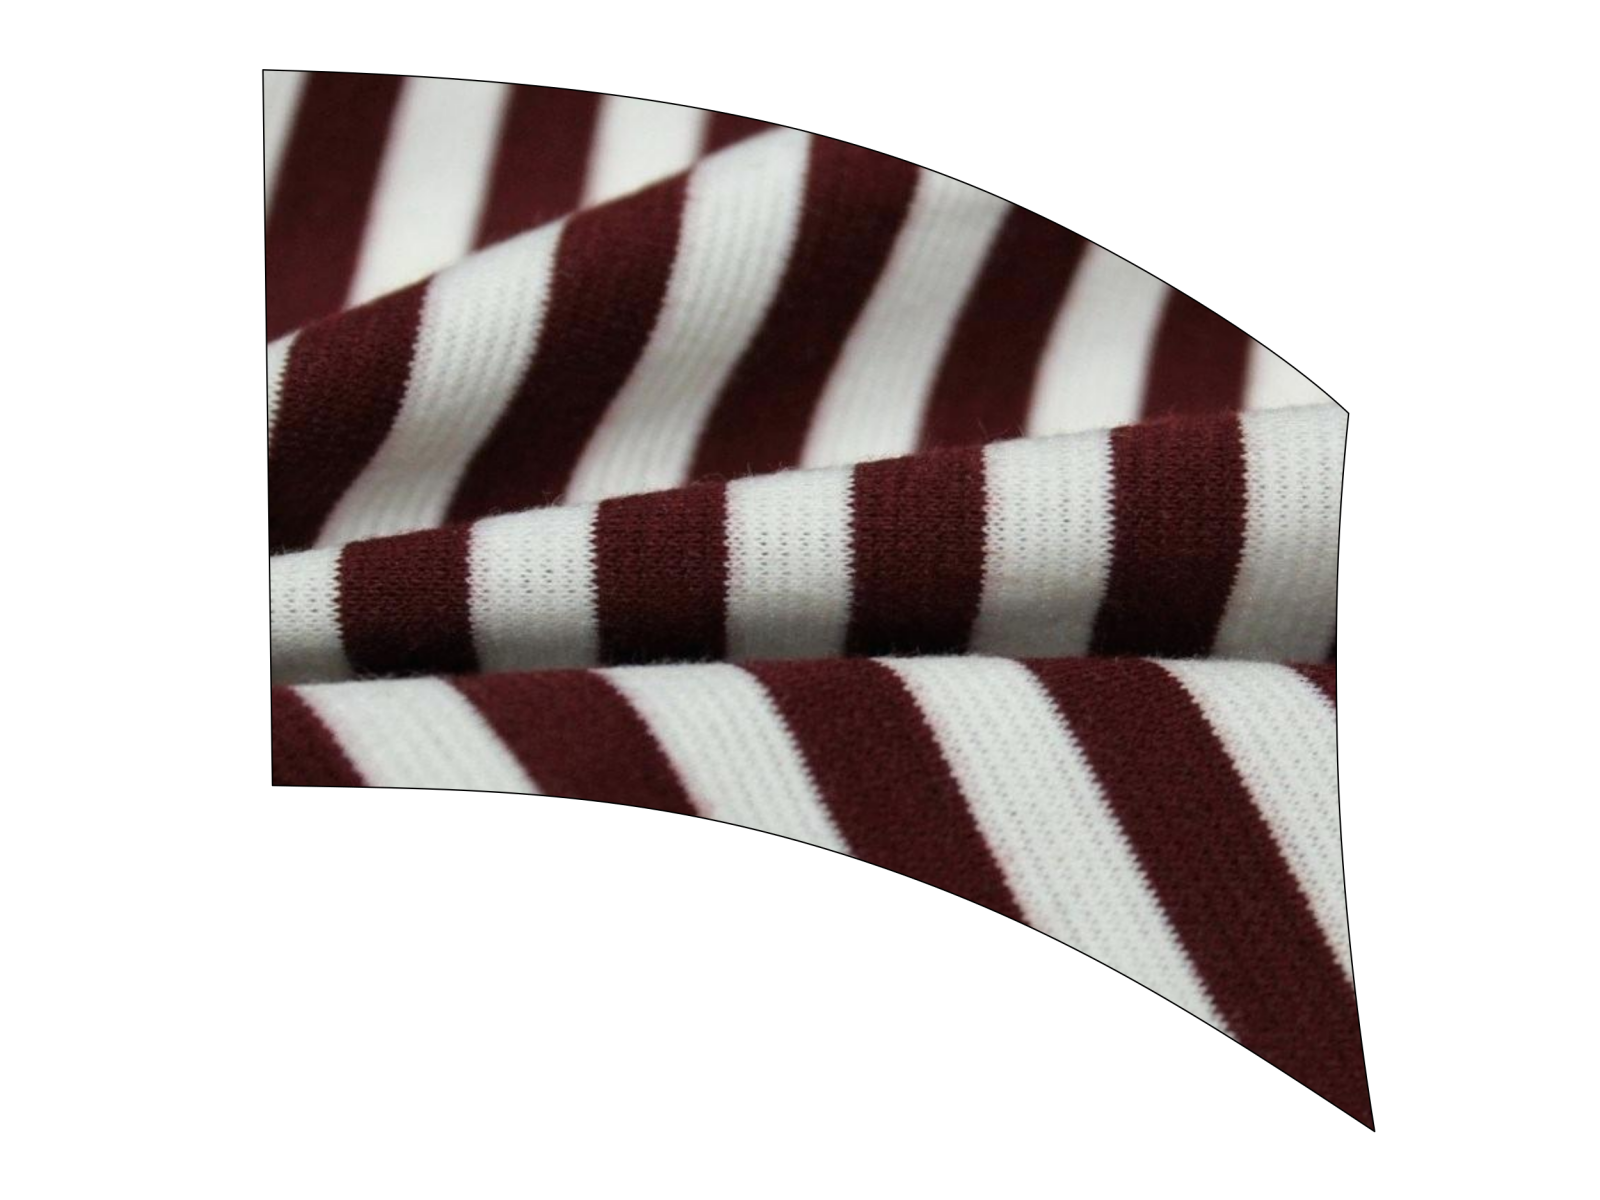 060201s - 36x52 Standard Abstract Red and White Stripes